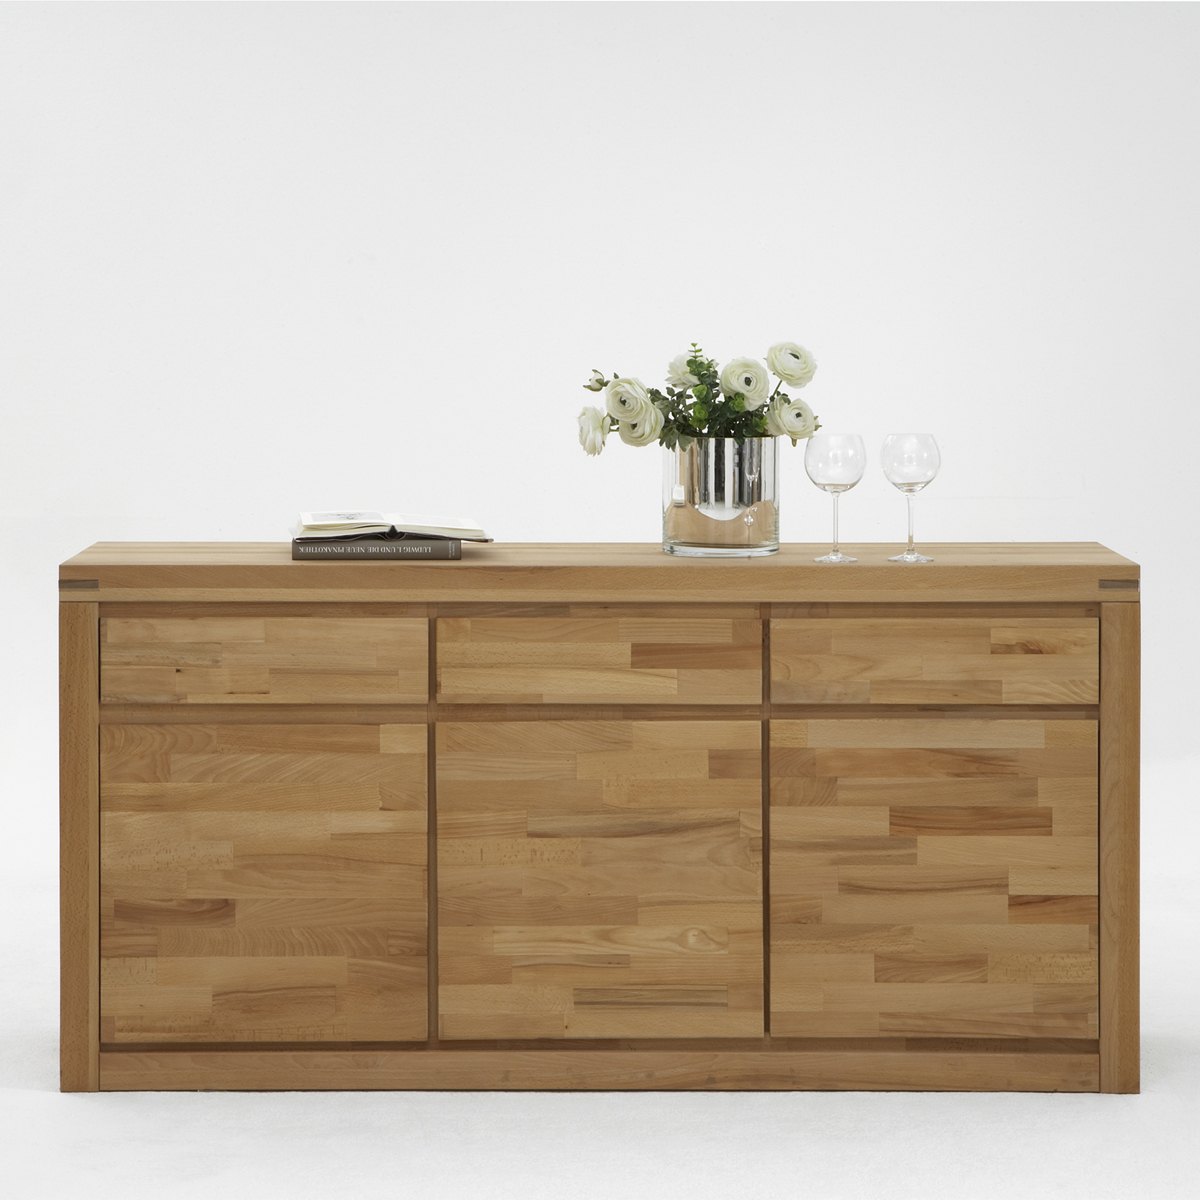 sideboard delft 6010 wohnzimmer kommode kernbuche massiv lackiert ebay. Black Bedroom Furniture Sets. Home Design Ideas